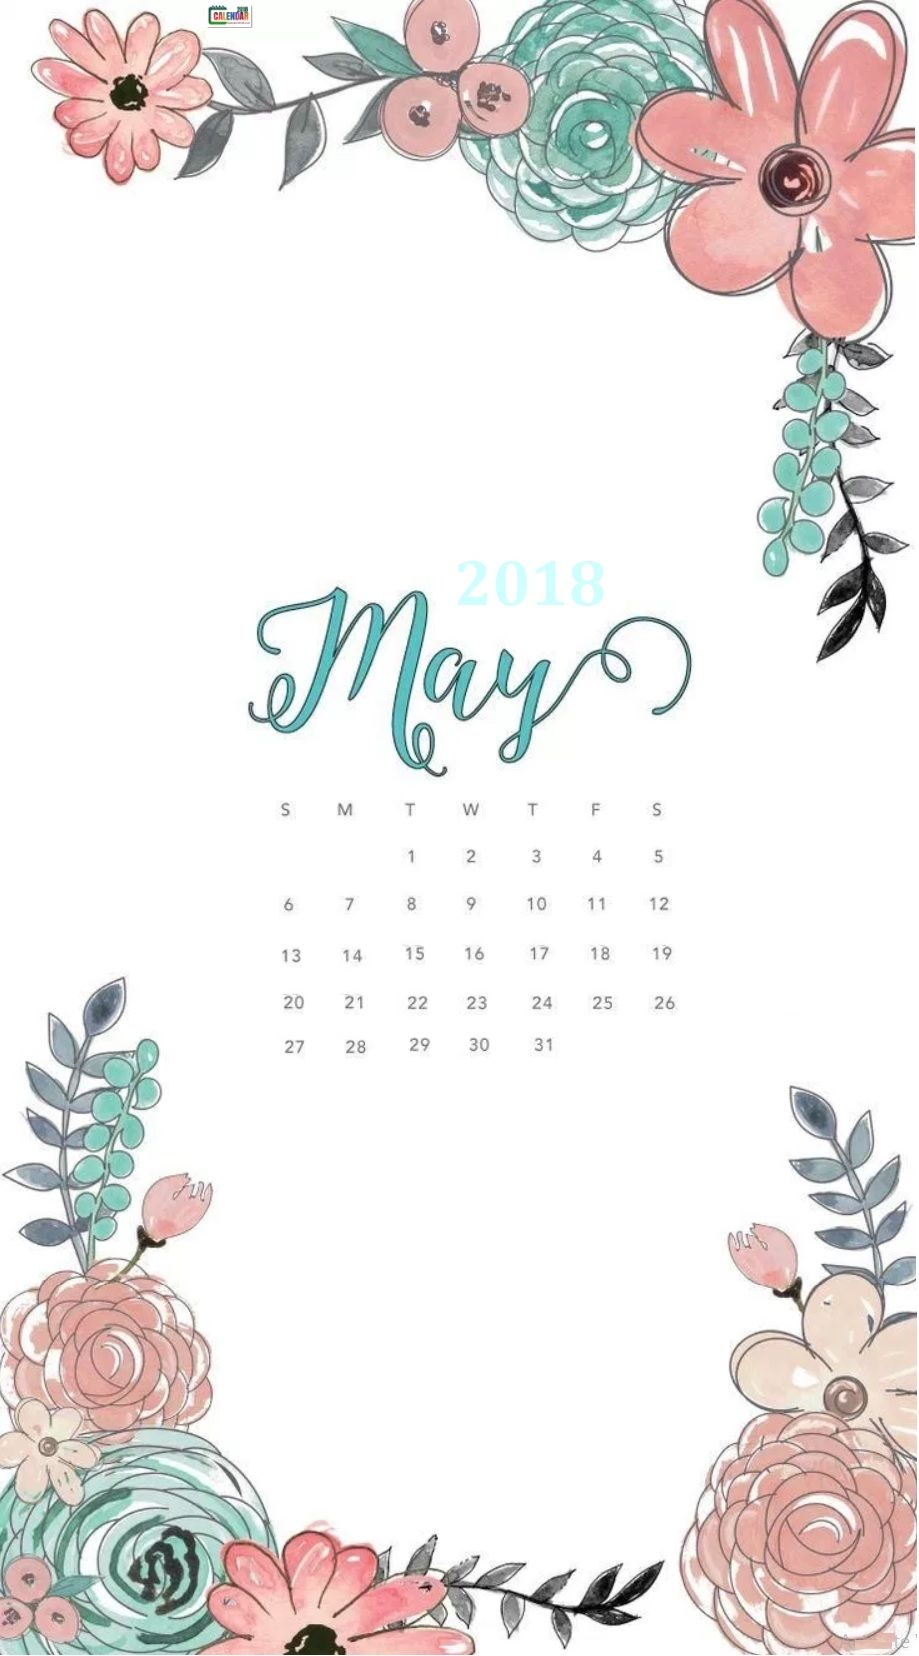 Hello May 2018 Calendar Wallpaper for iPhone